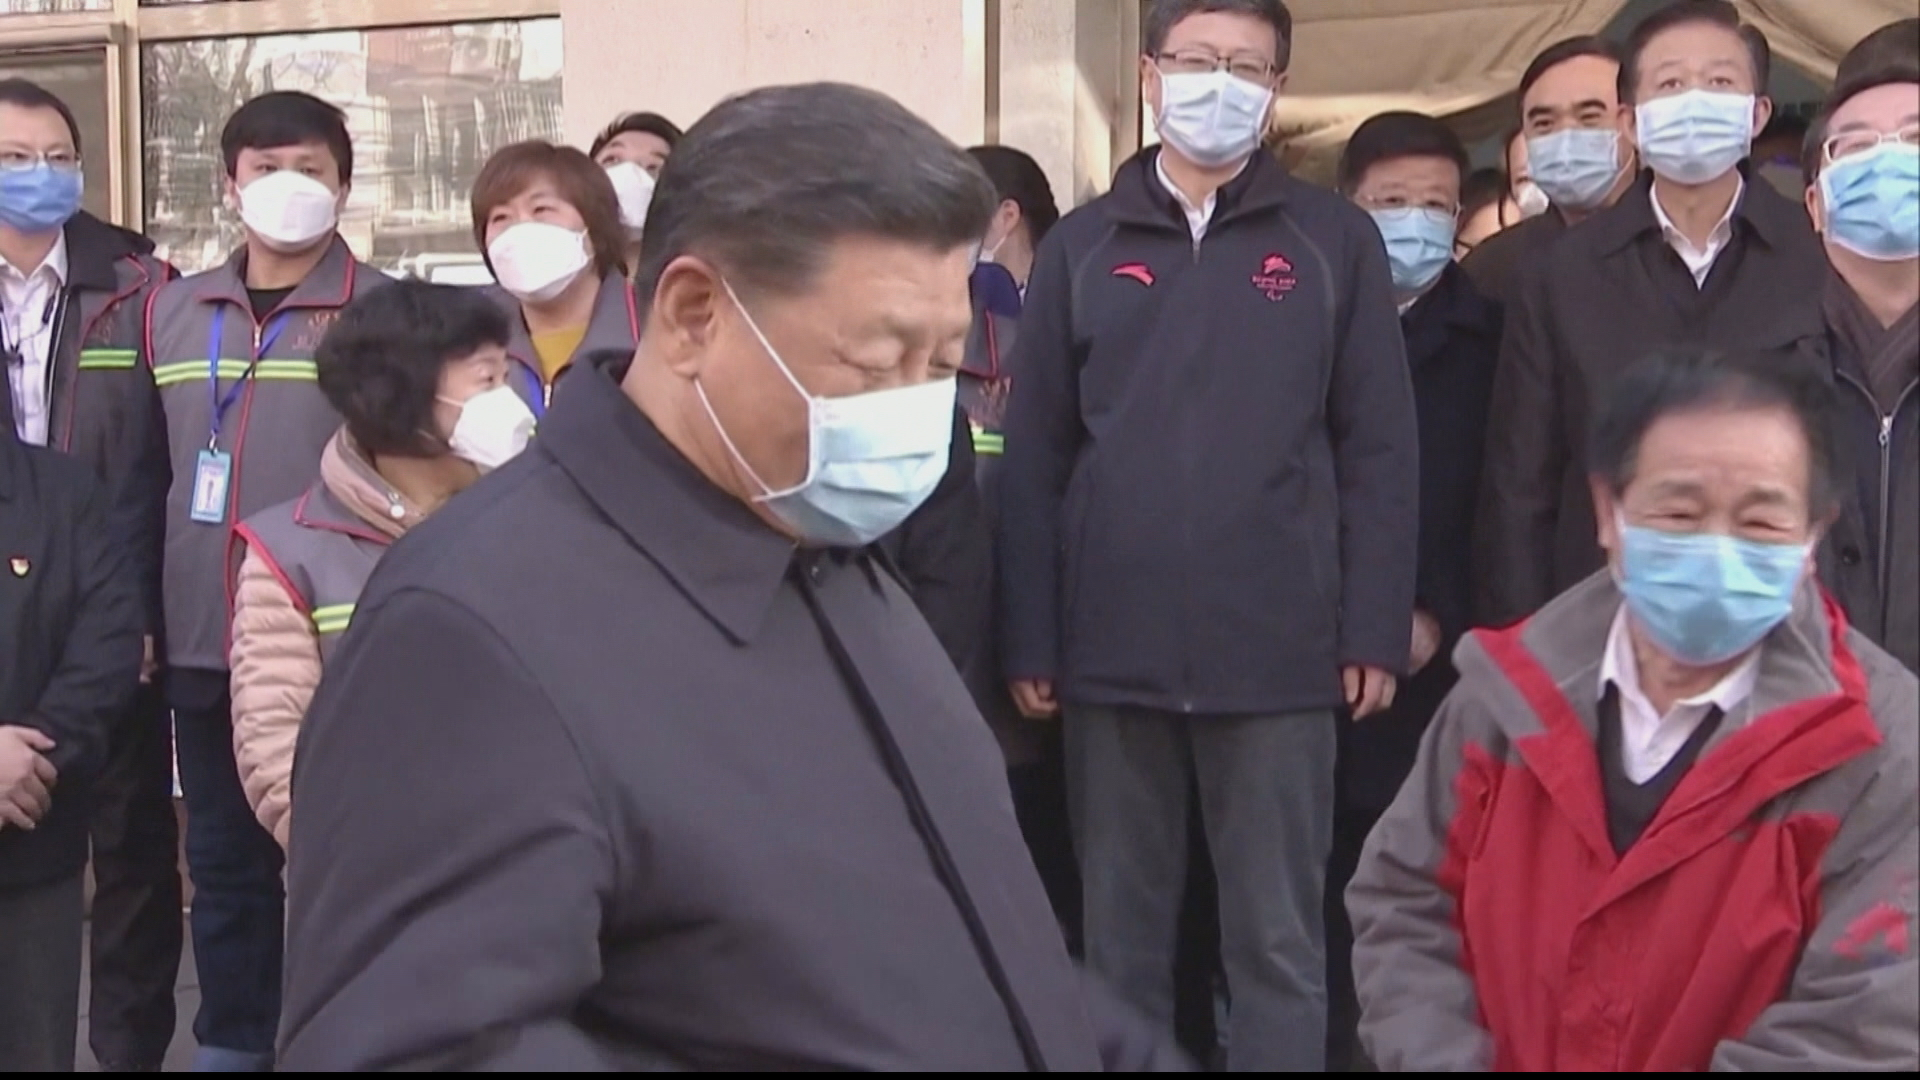 Controversy over Chinese government response to coronavirus ...